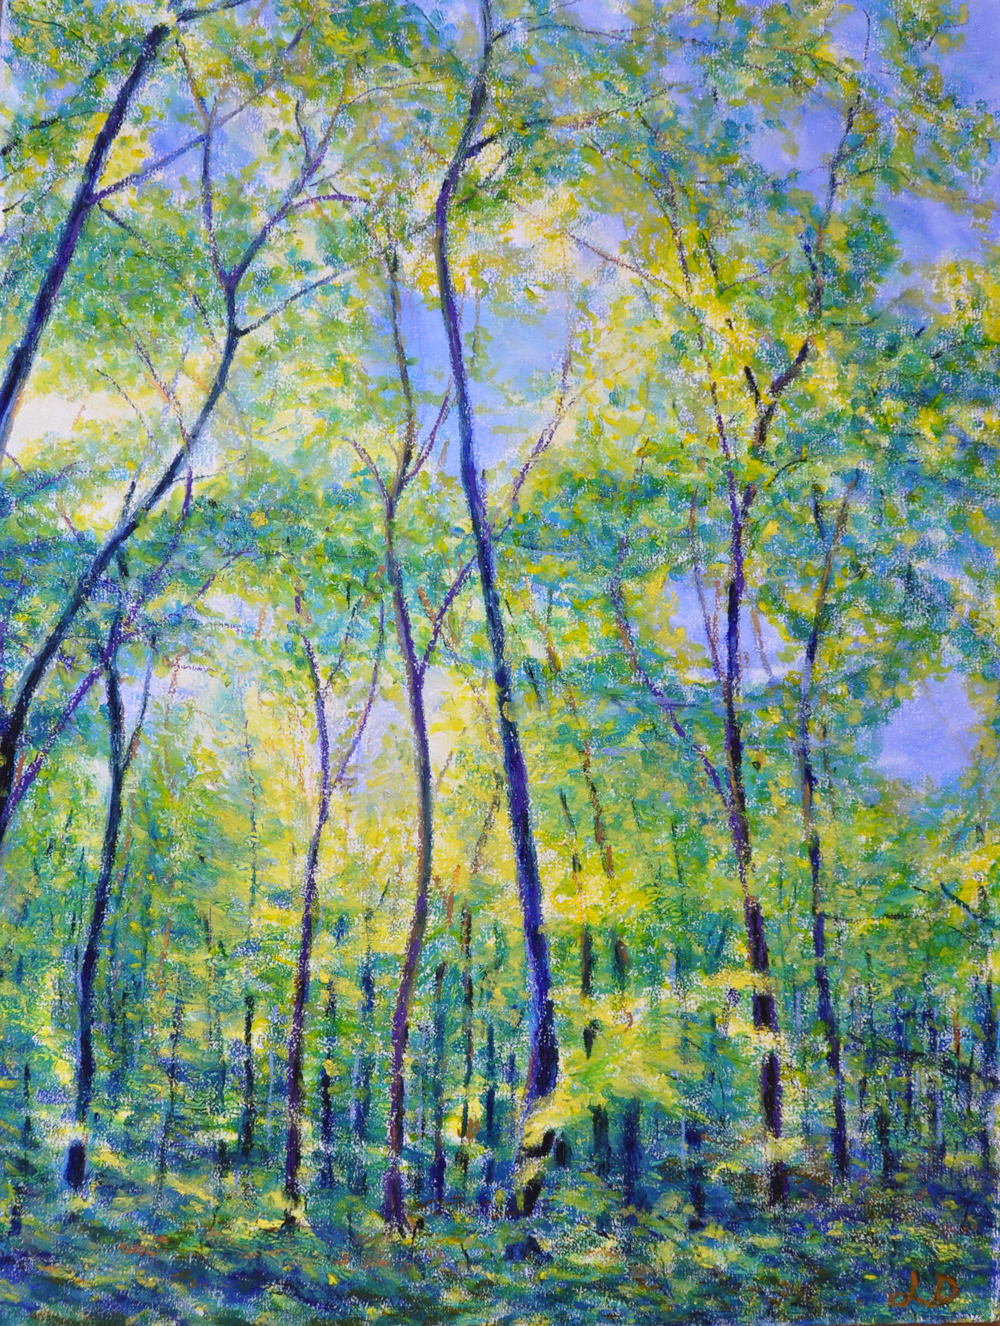 Cossonay forest no. 8. Oil pastel on paper, 75x60, 2016